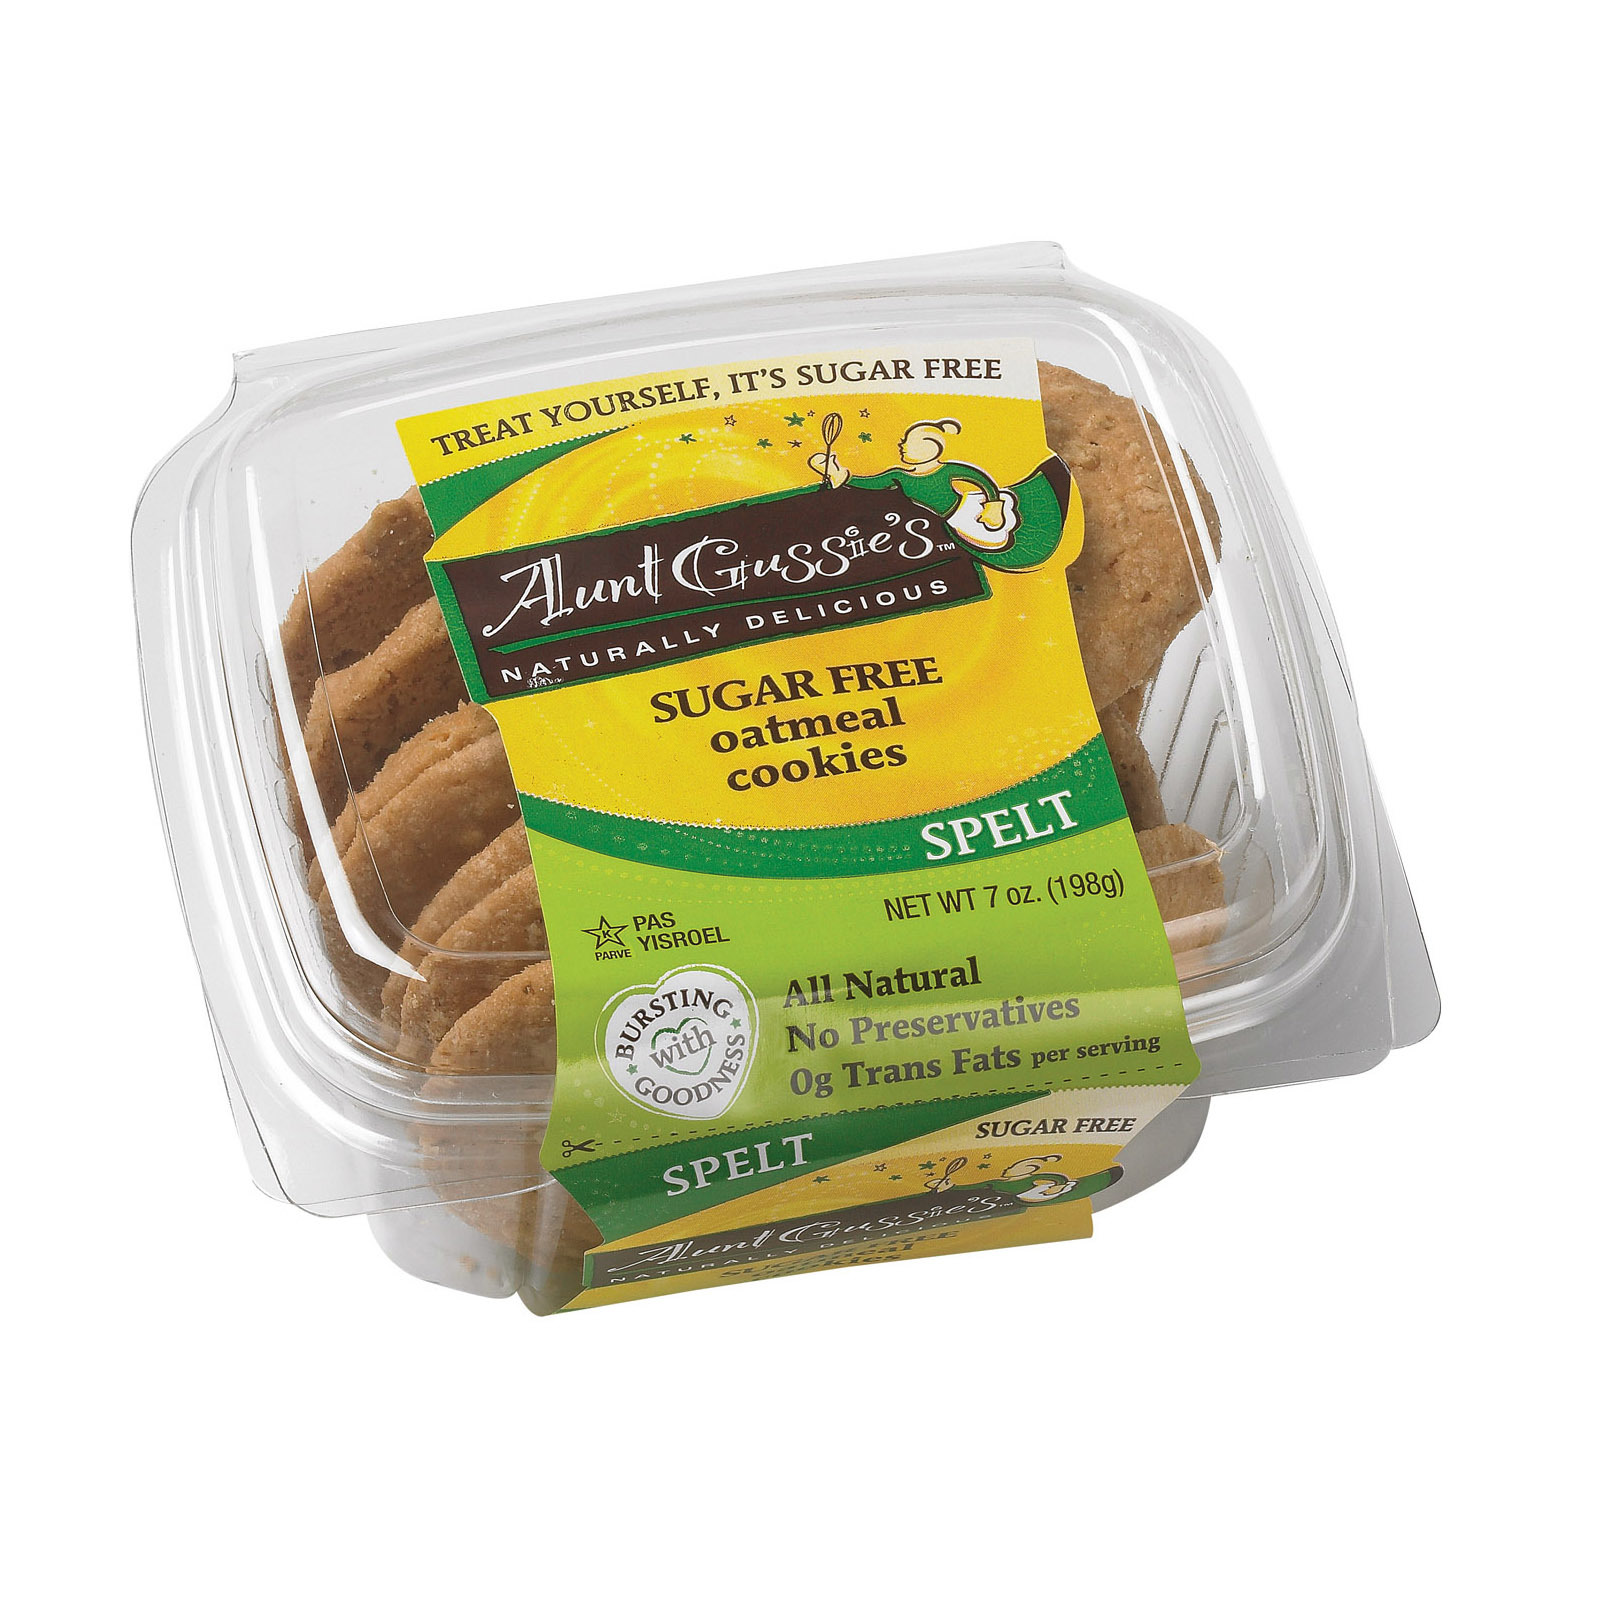 Aunt Gussie's Cookies - Sugar Free Oatmeal - Case of 8 - 7 oz.